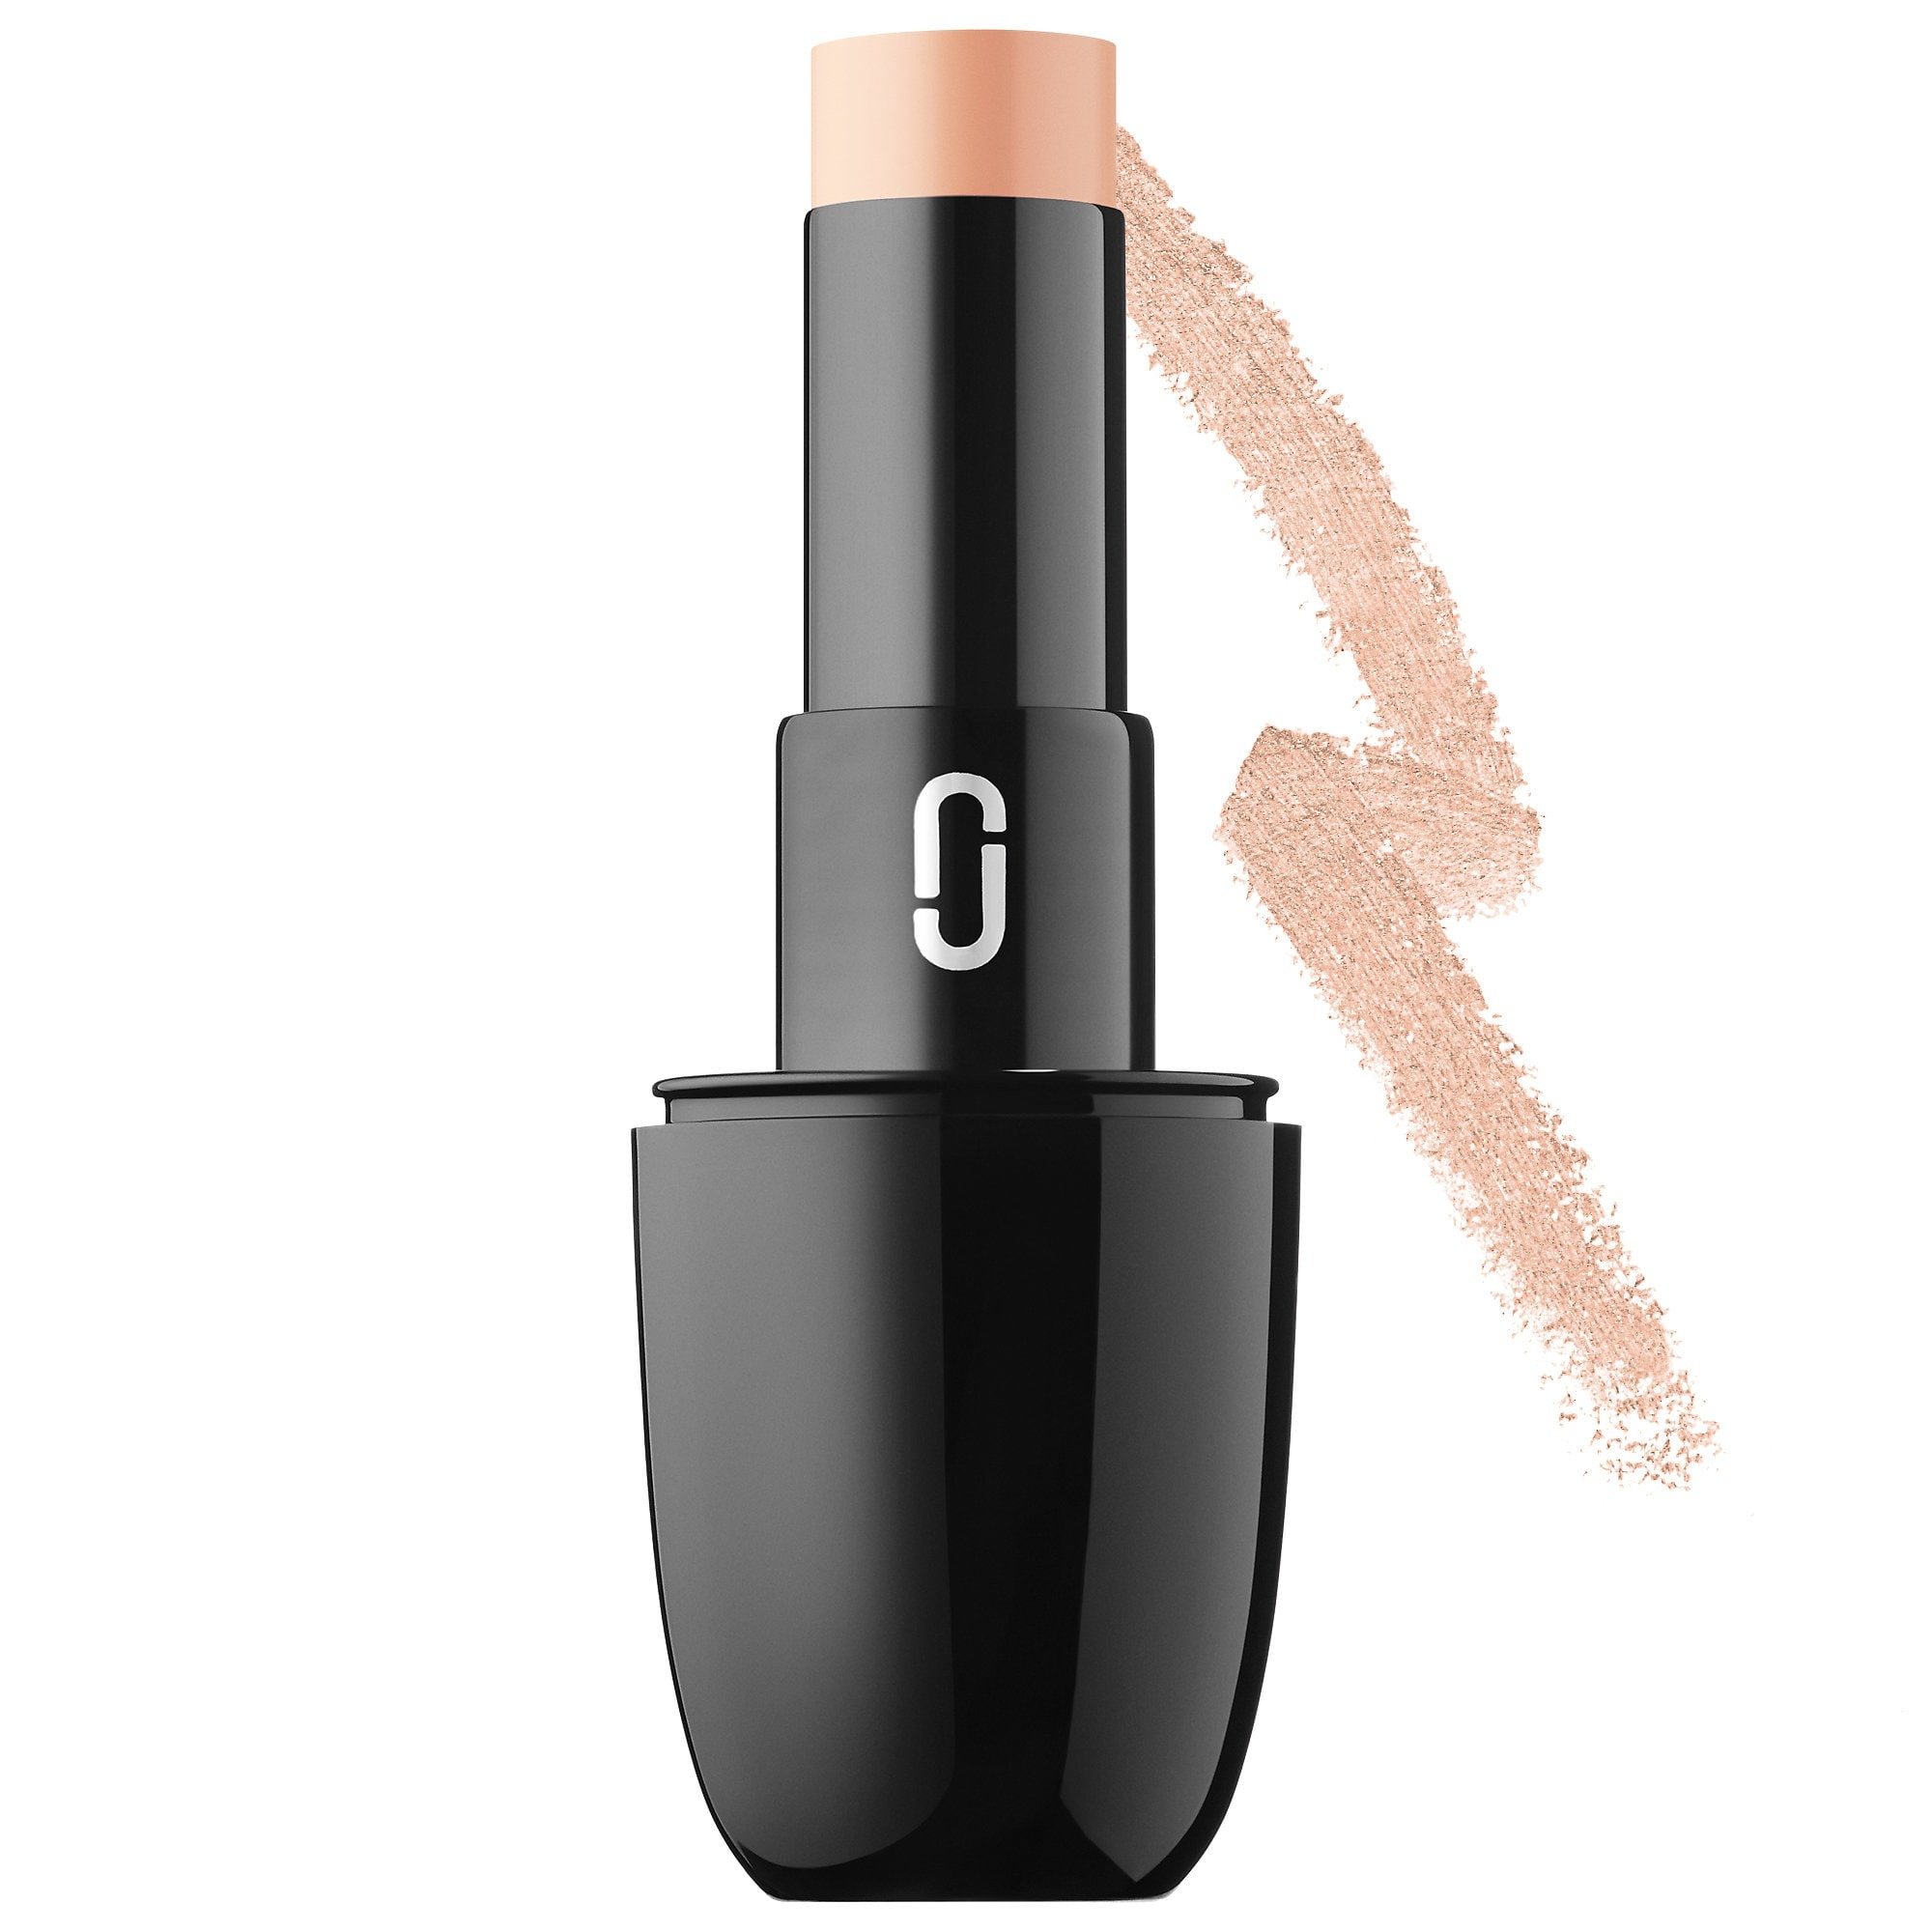 CONCEALER & TOUCH-UP STICK